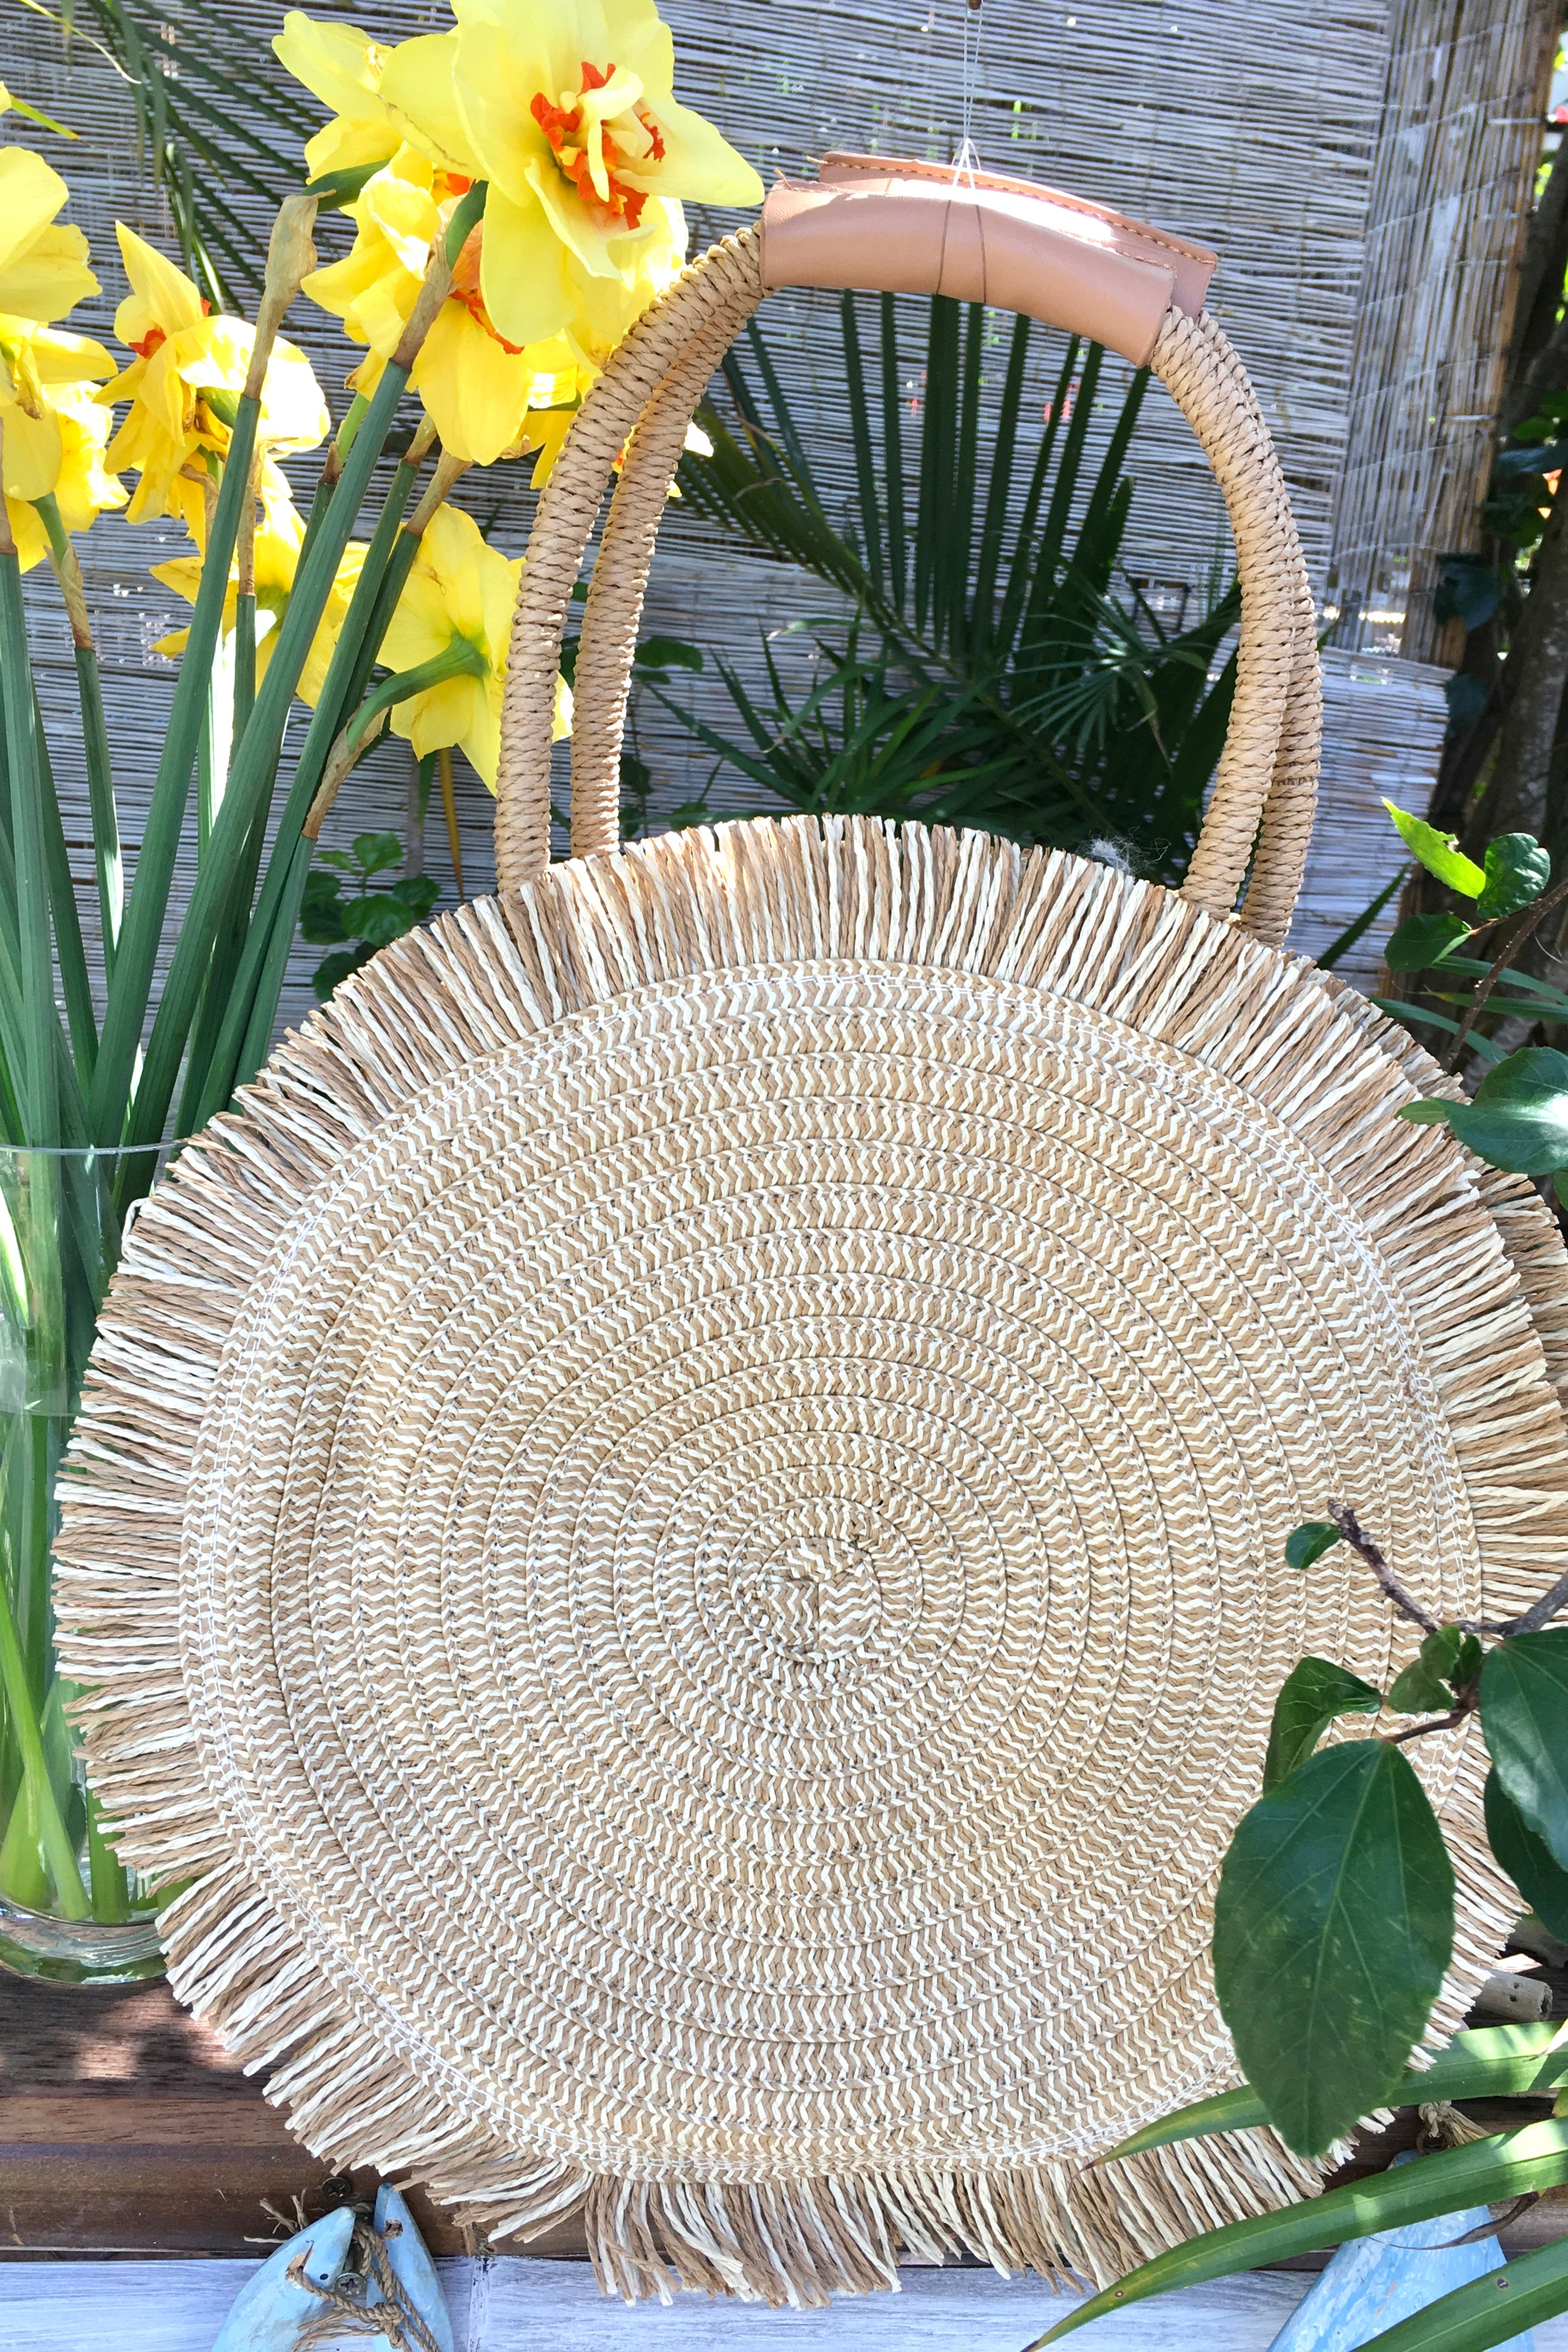 The Bag Lillie Grass Sunbeam is a stunning and luxurious woven circular bag, big enough for all many things whilst not being bulky